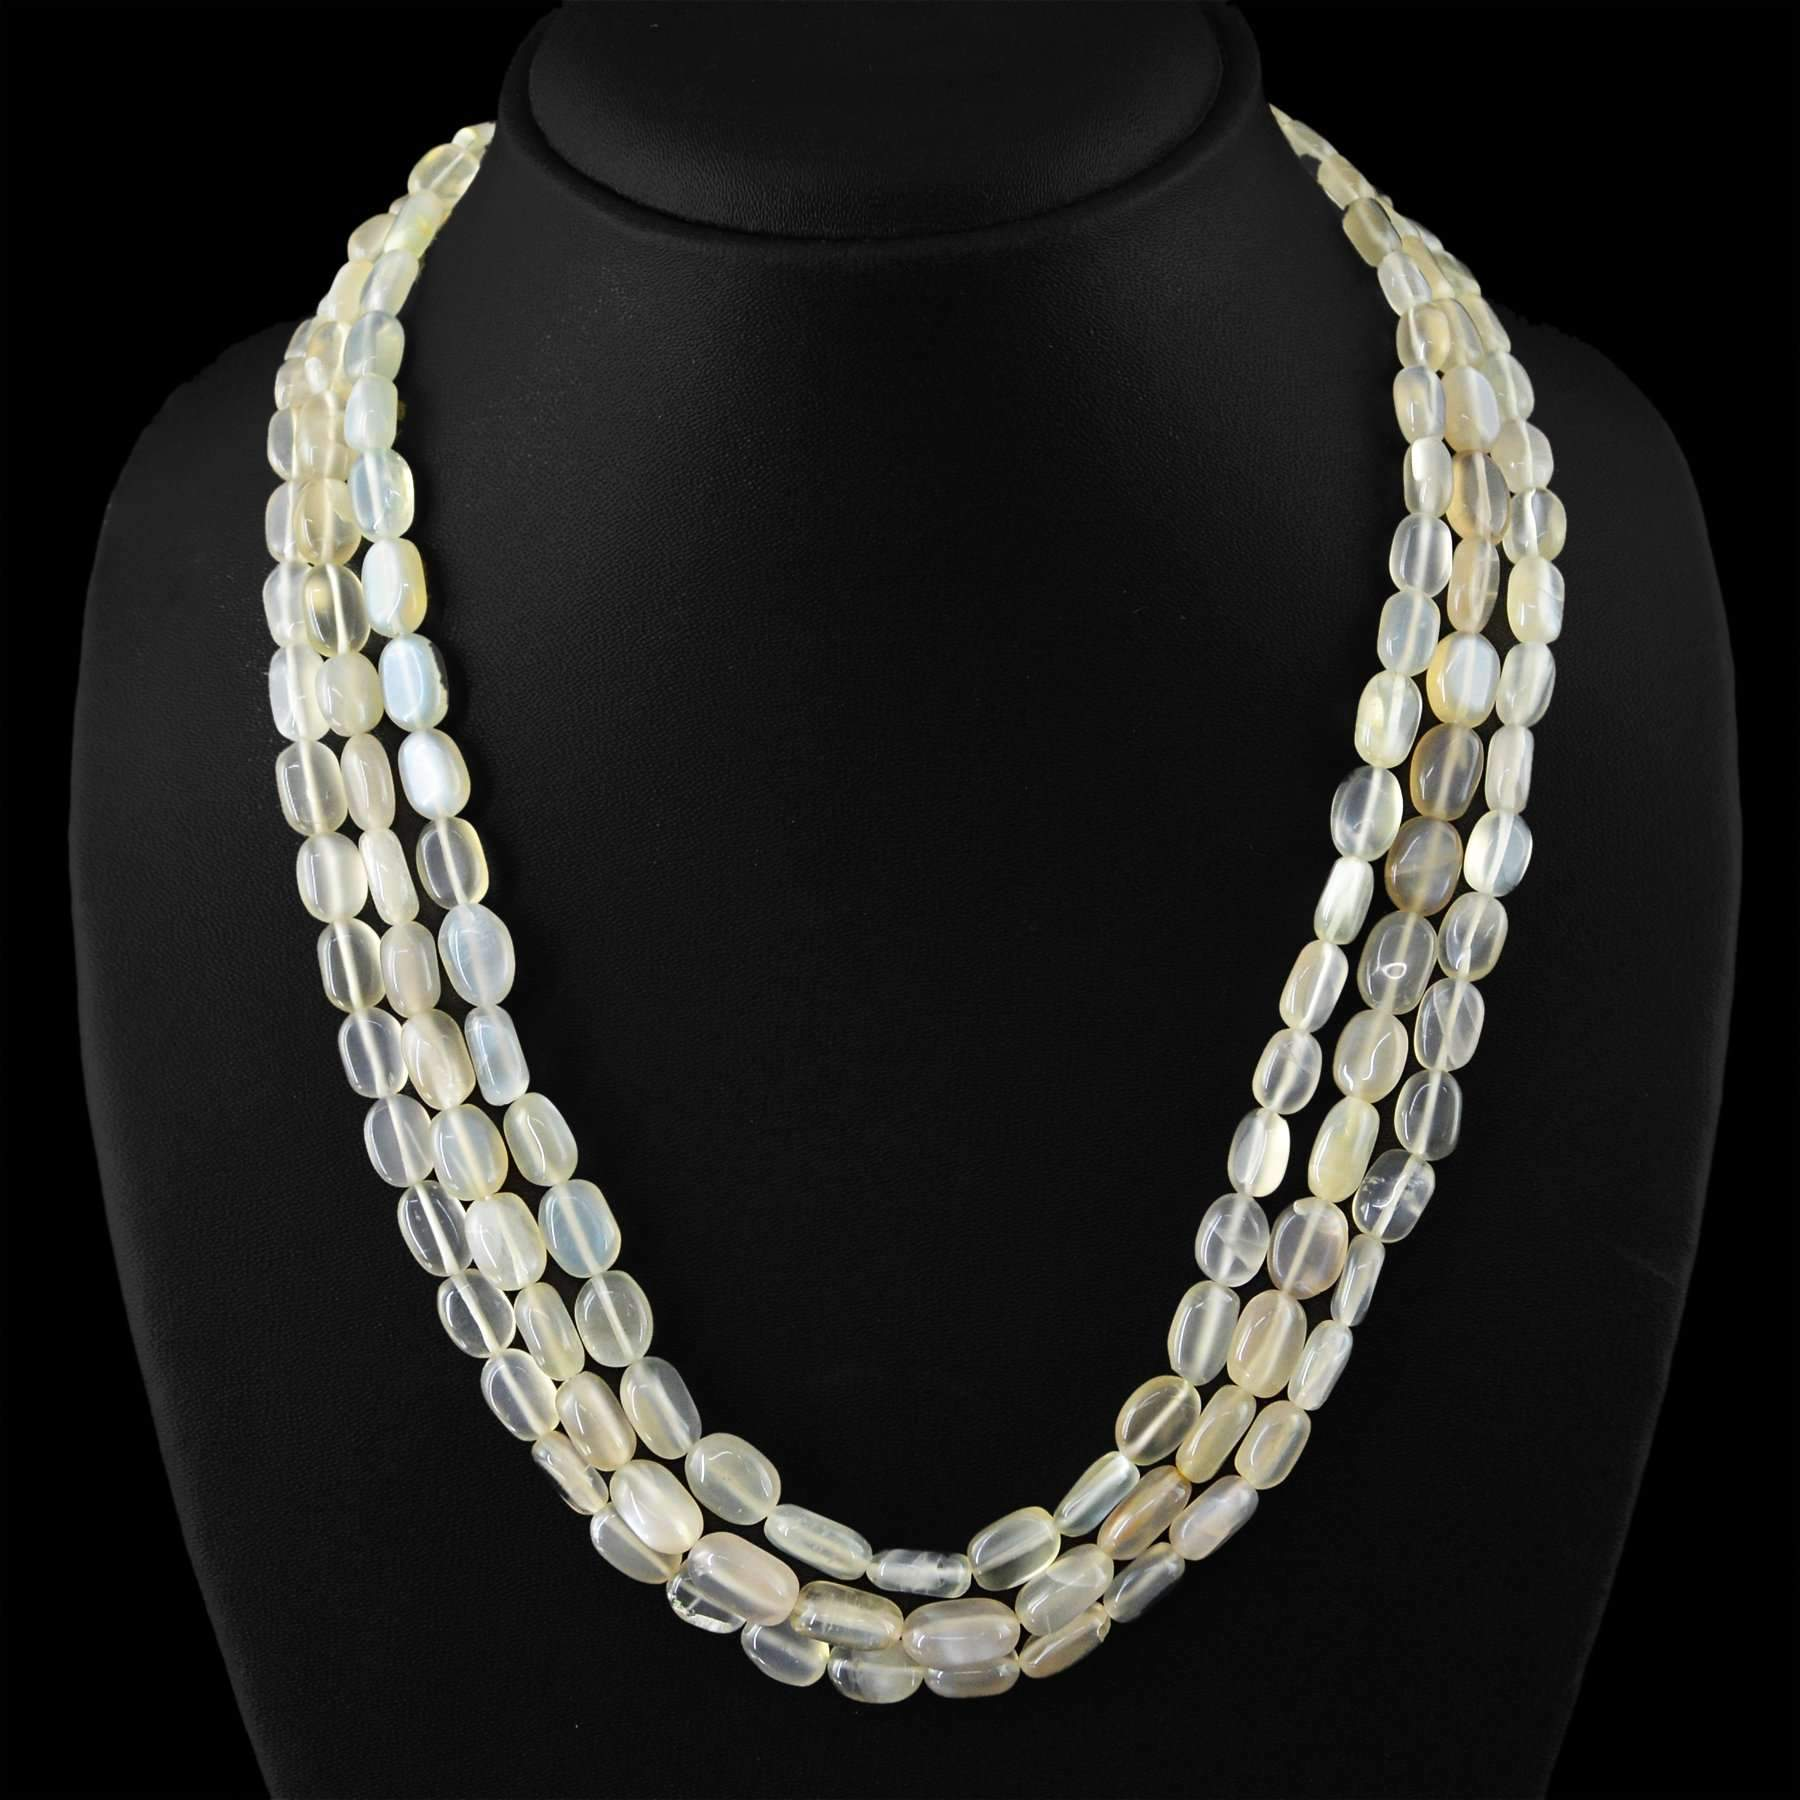 gemsmore:Natural Moonstone Necklace 3 Strand Untreated Oval Shape Beads